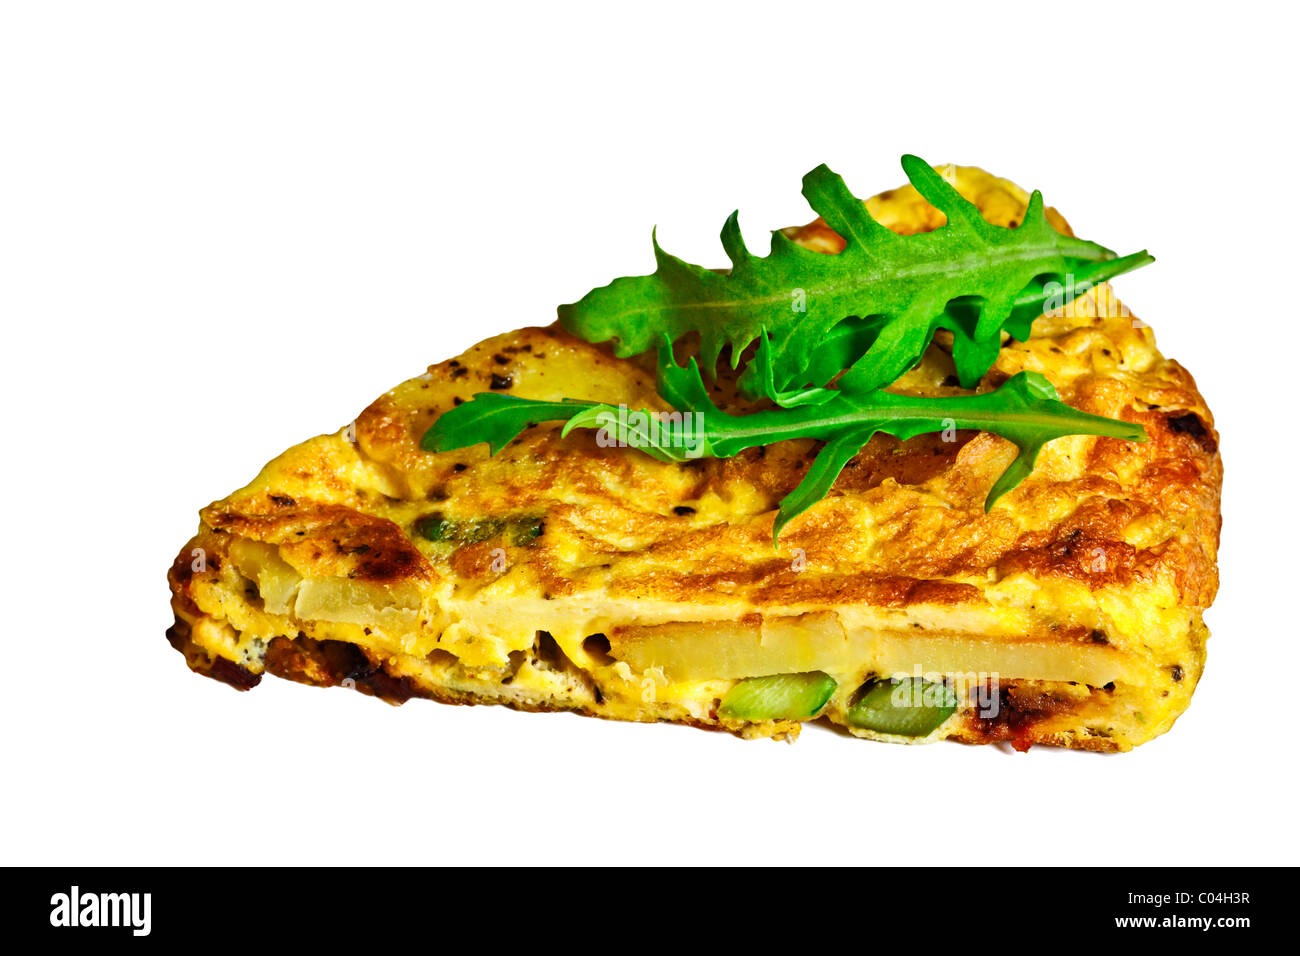 Asparagus, potato, and bacon frittata / omelet isolated on white background. Charles Lupica - Stock Image